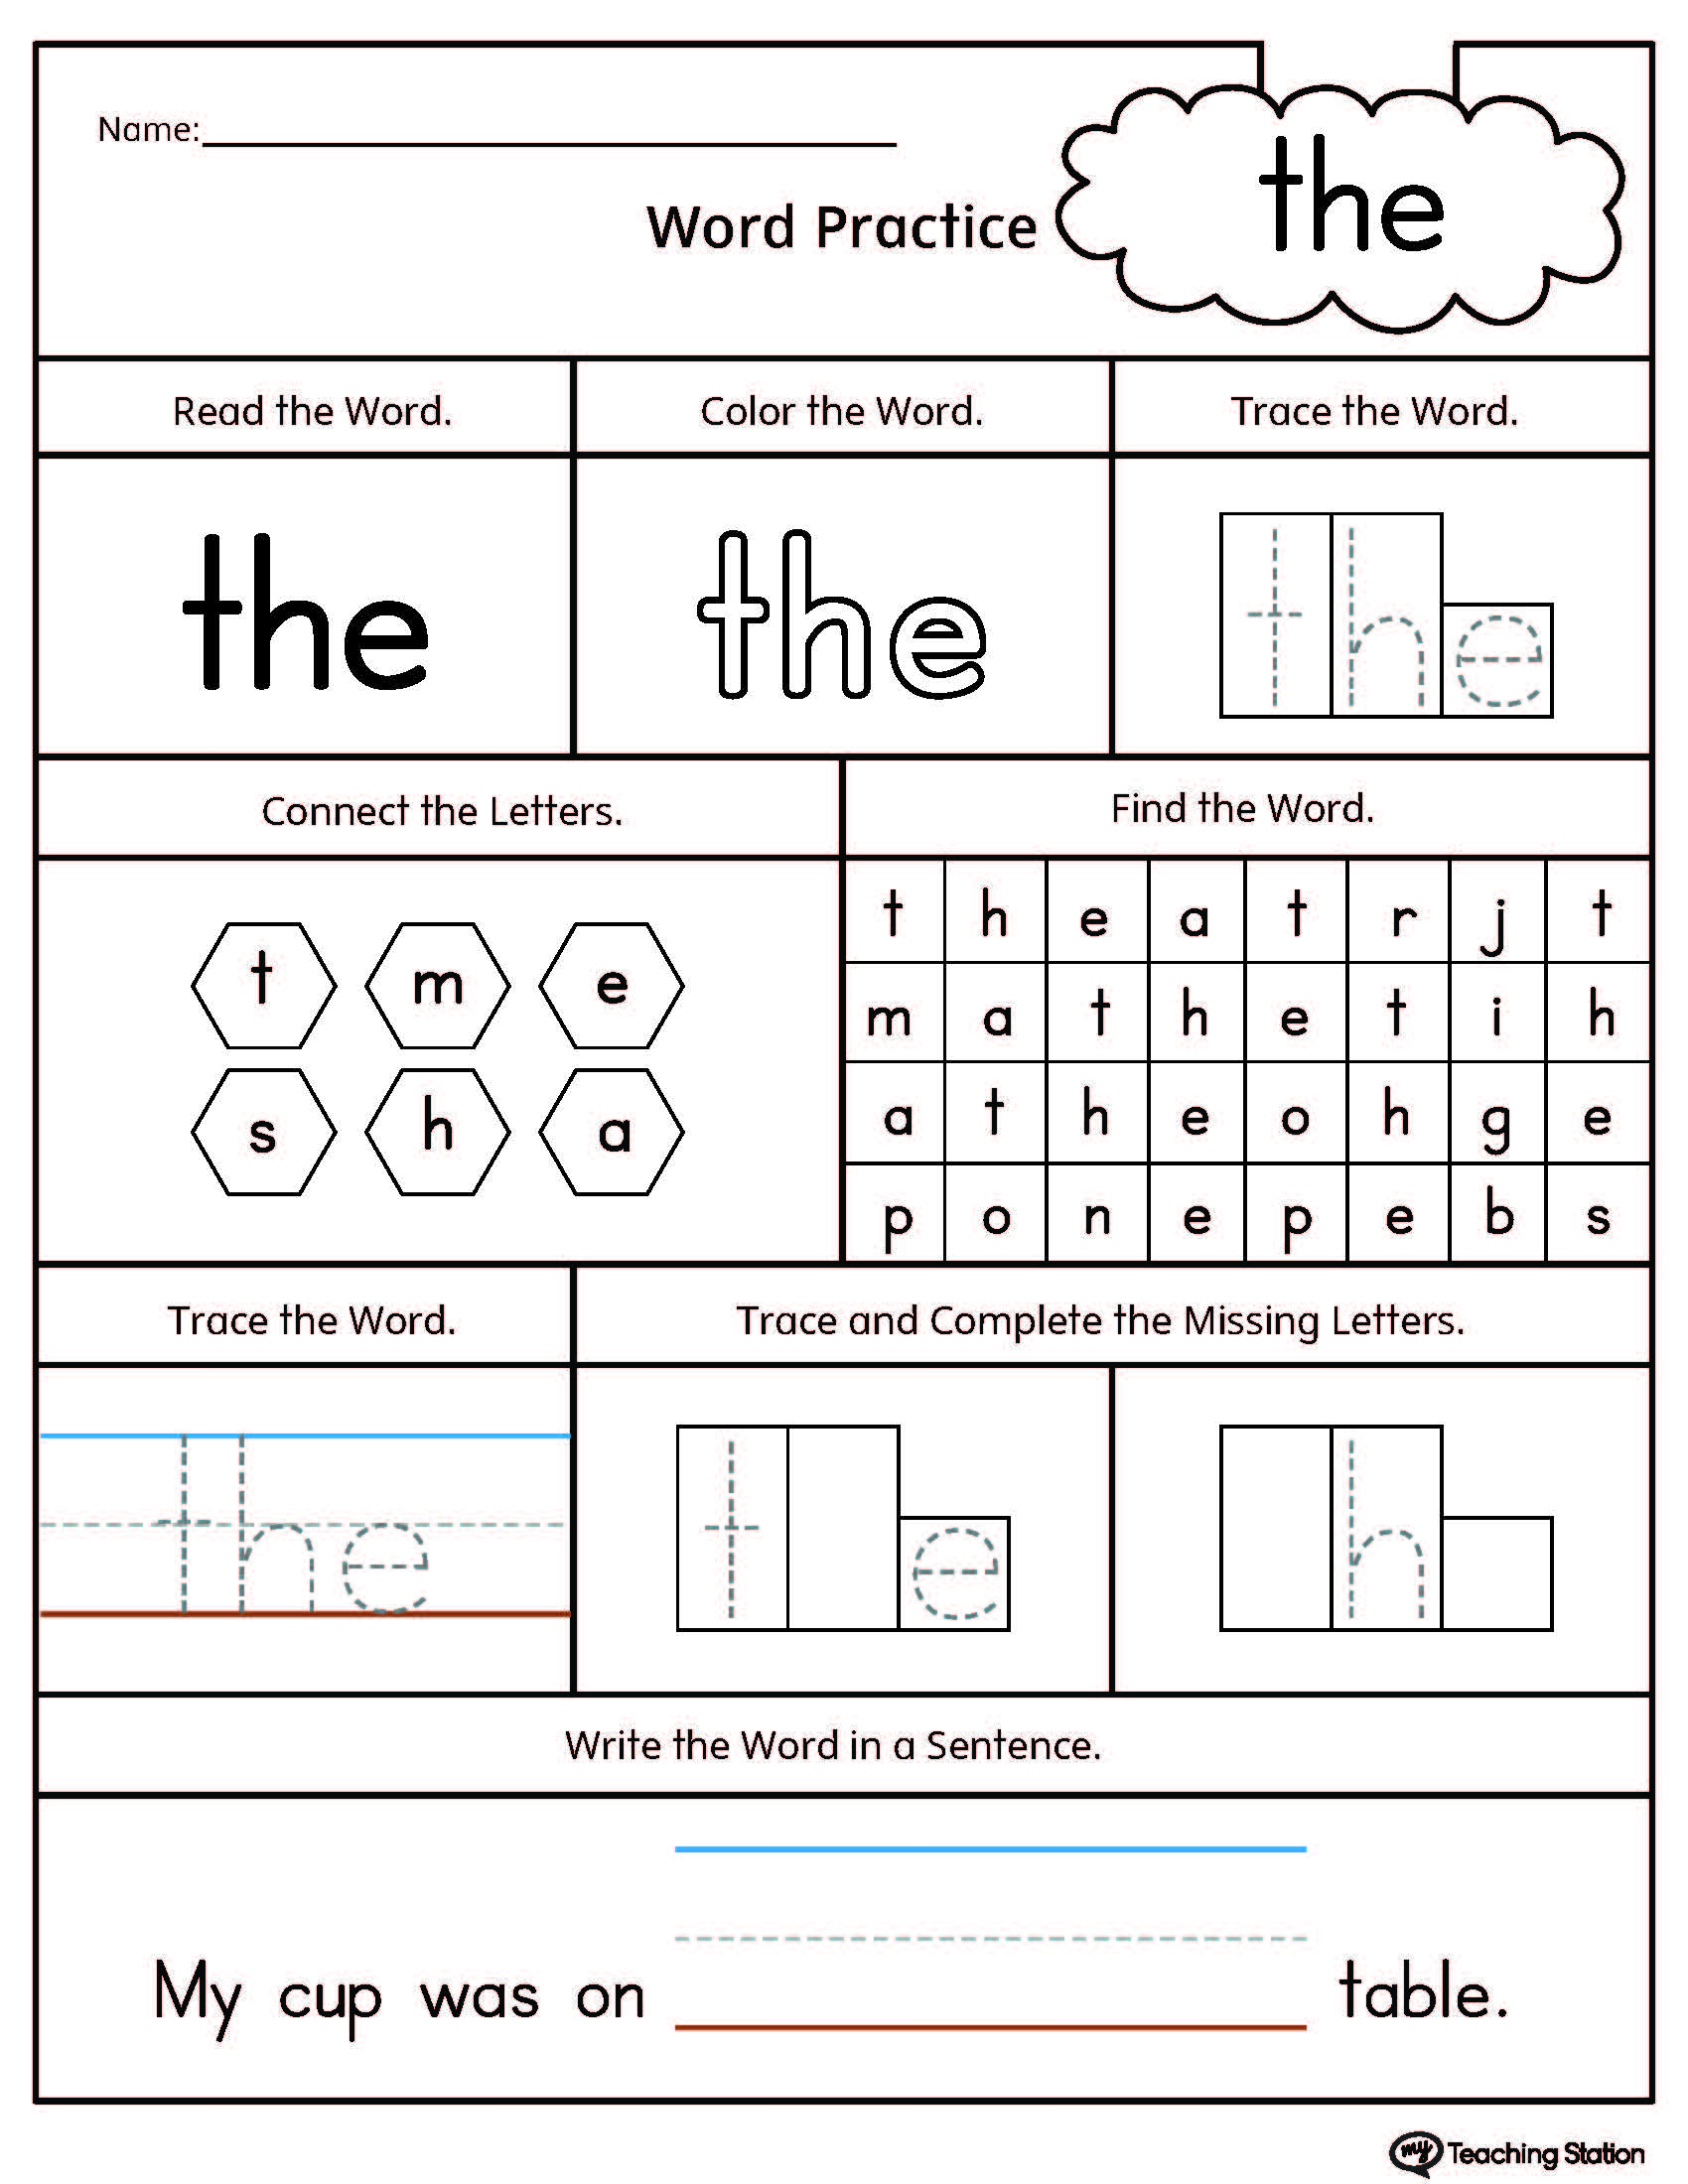 - Sight Word The Printable Worksheet MyTeachingStation.com